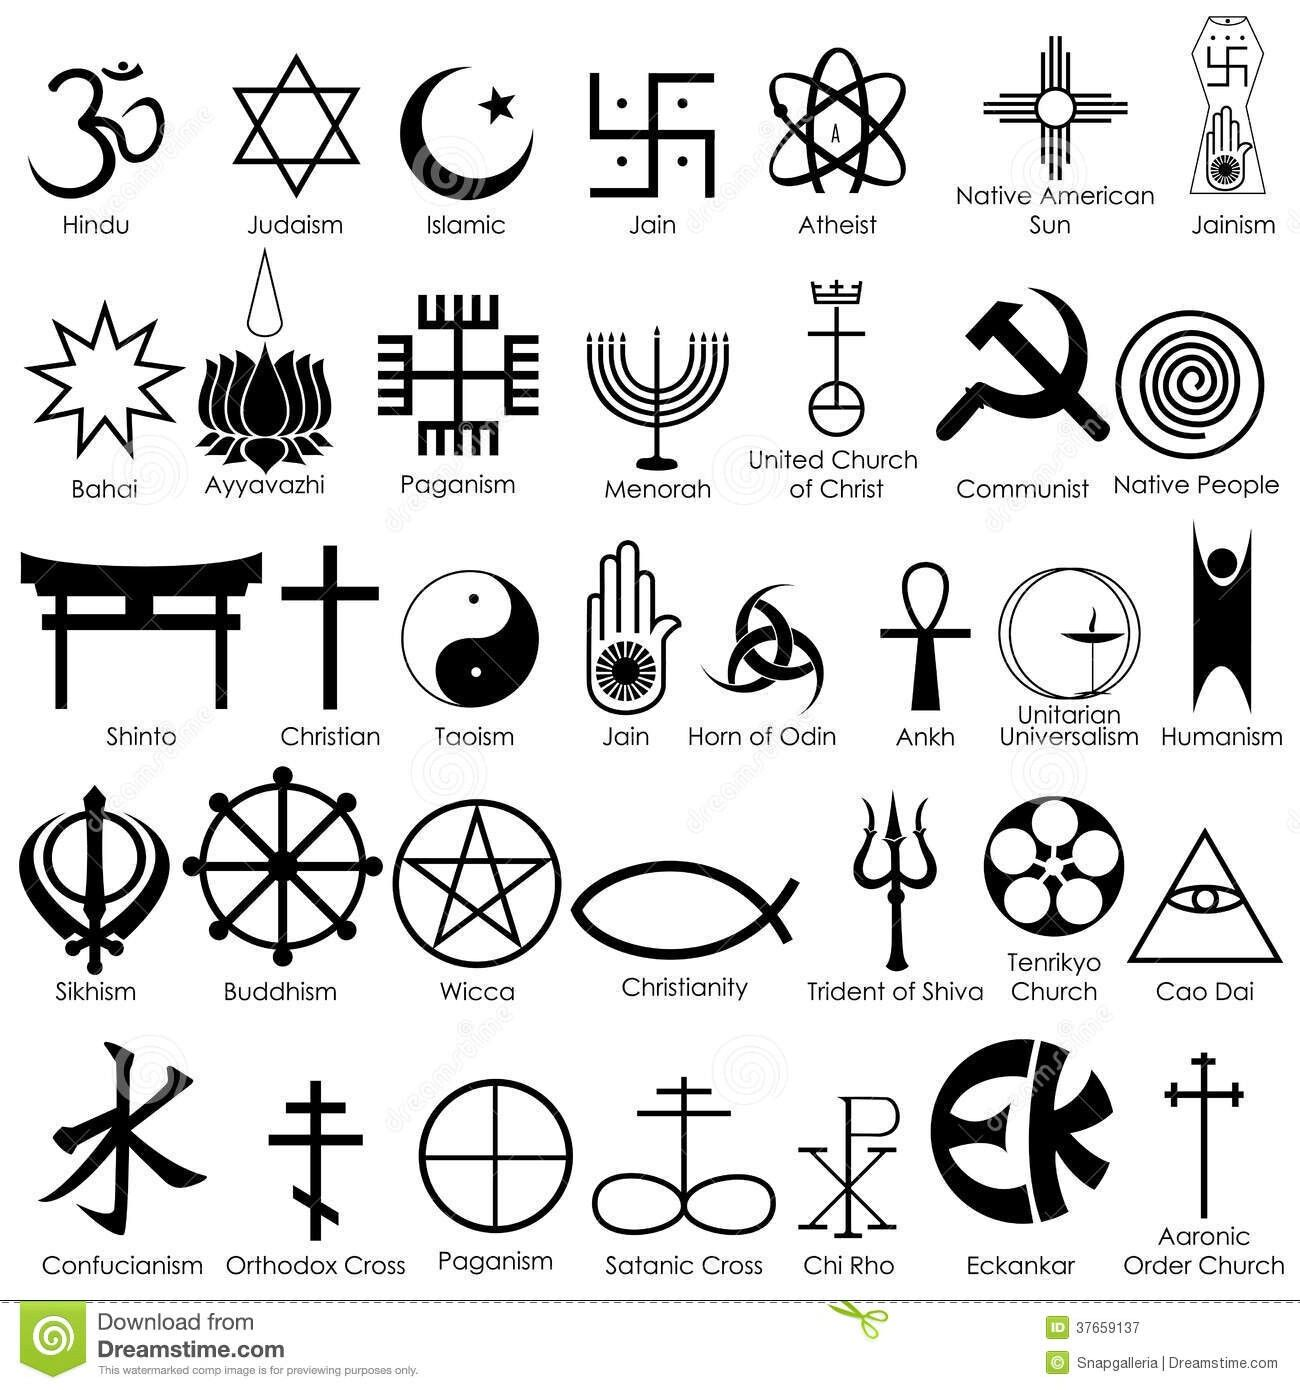 Zen Buddhist Symbols And Meanings: Favorite Places And Spaces